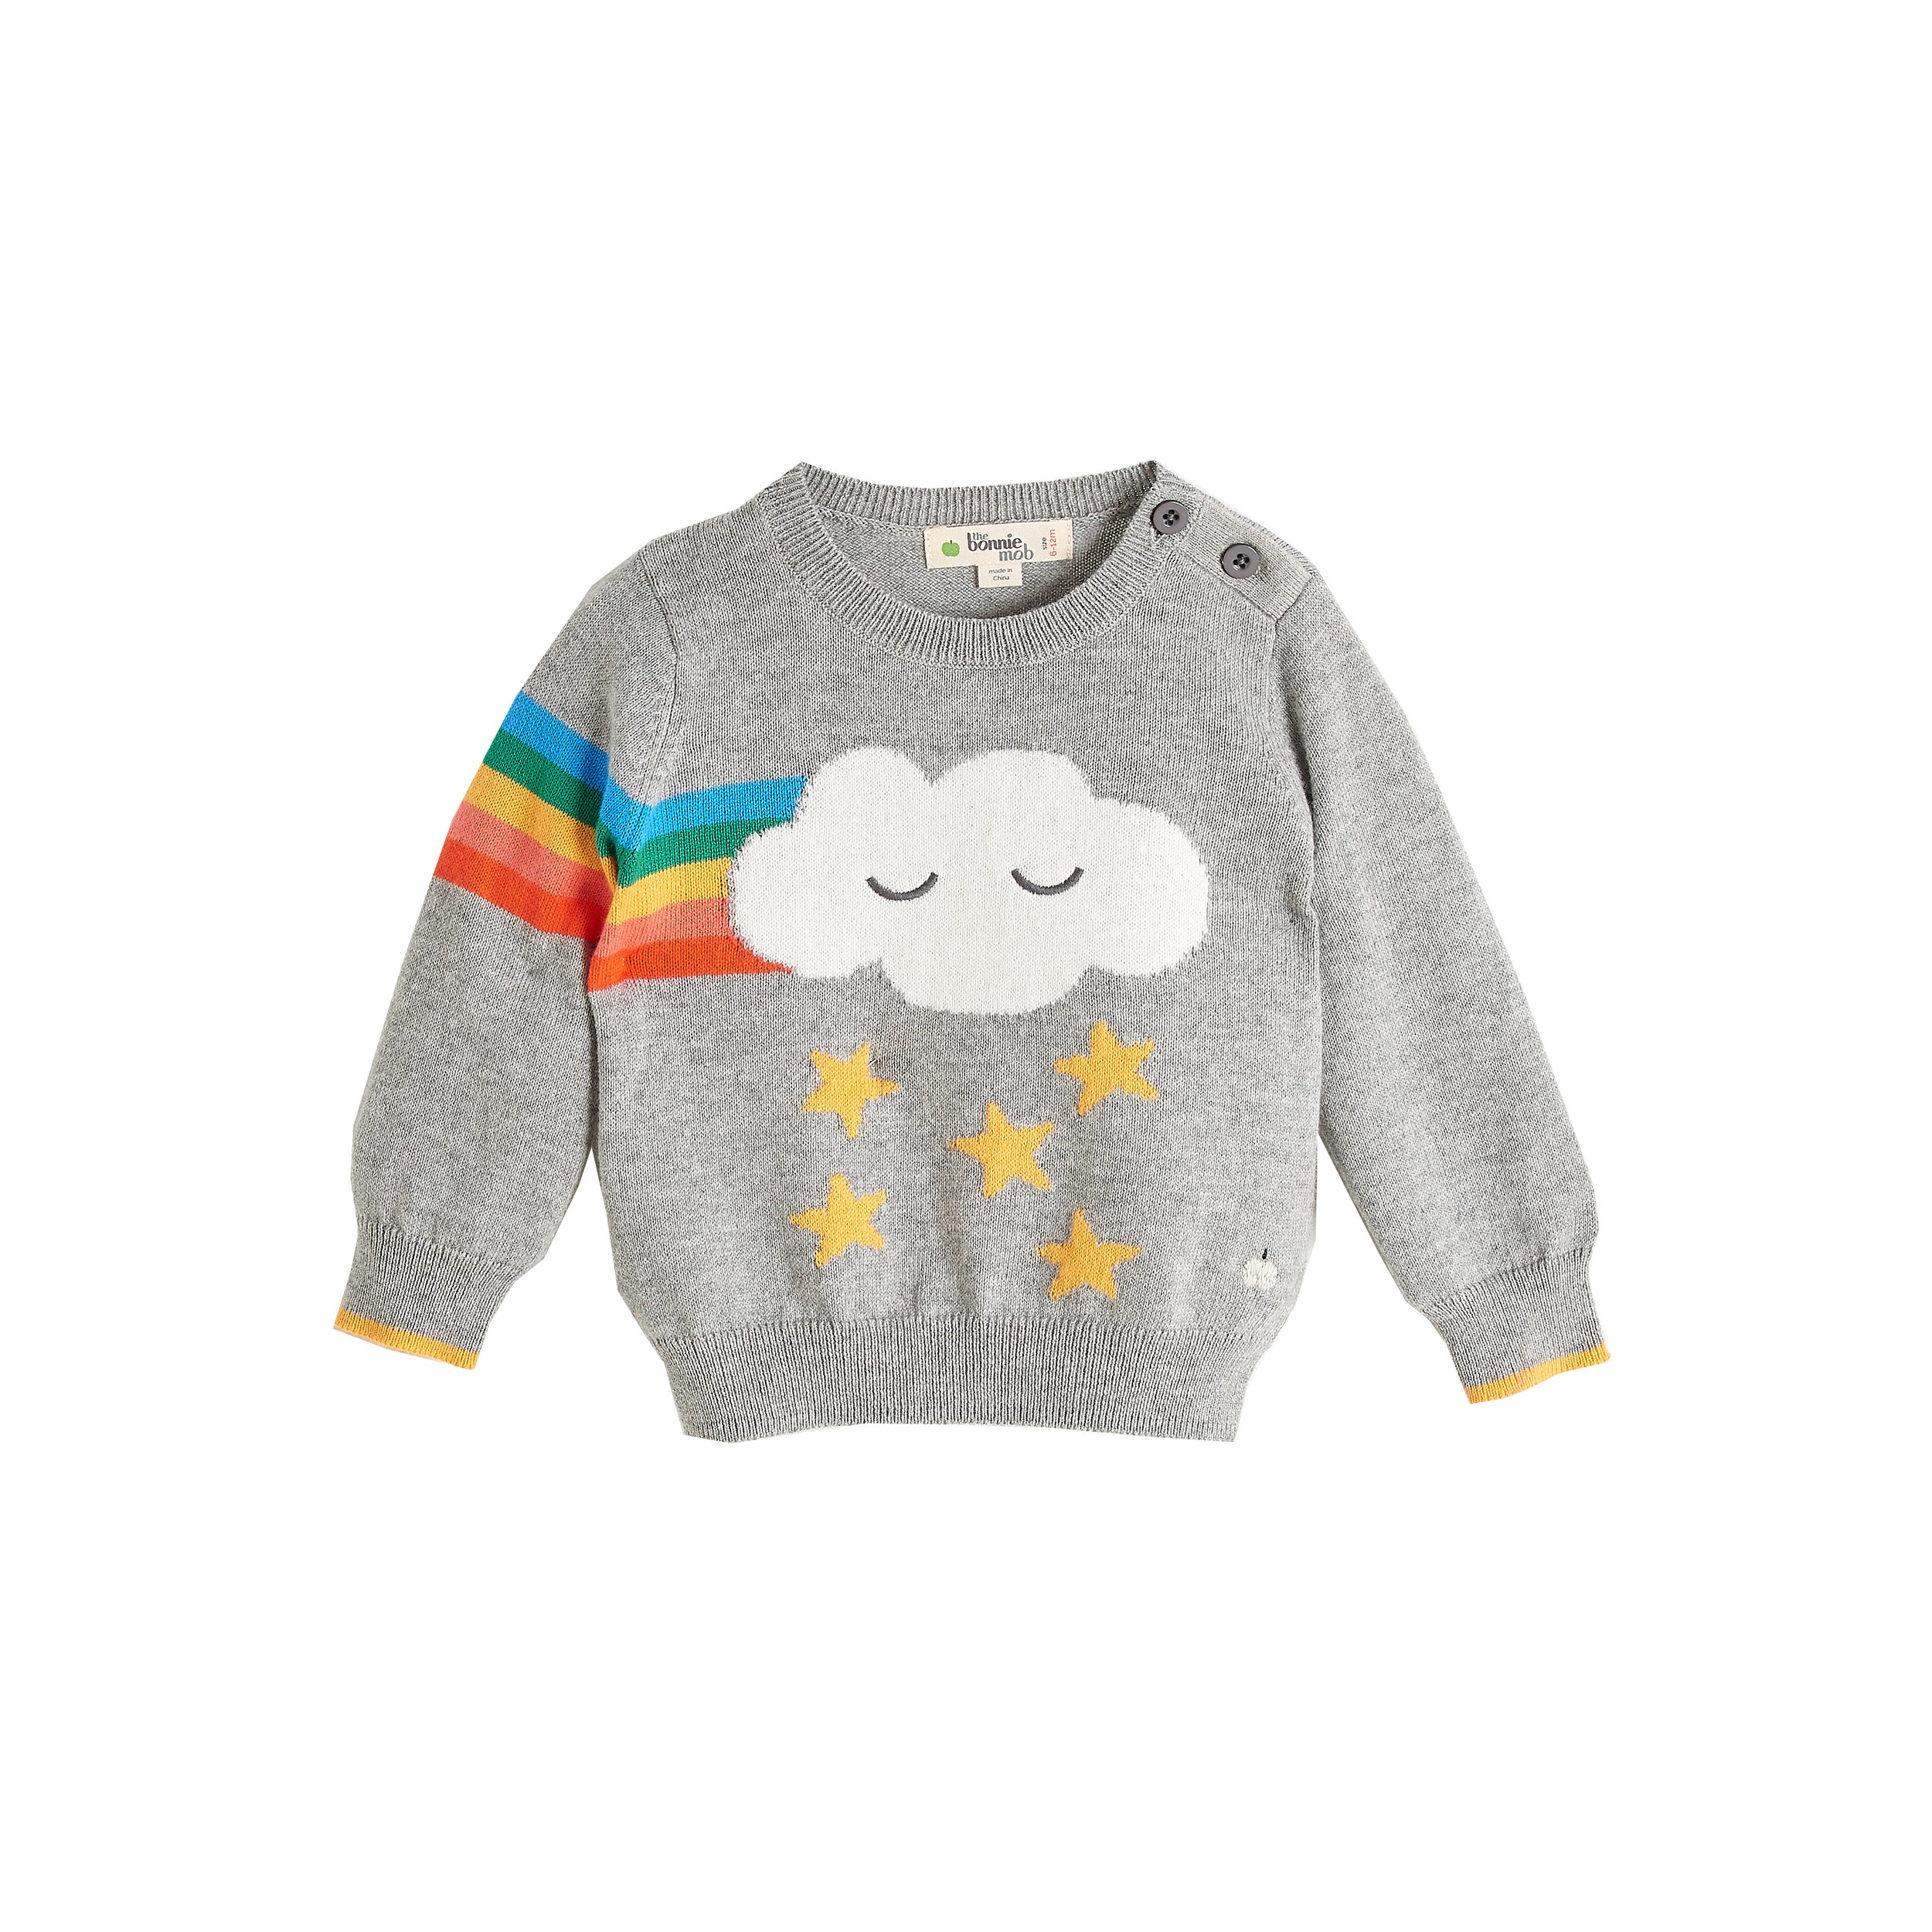 THE BONNIE MOB GRANDMASTER 2389_grey_ baby kids rainbow cloud intarsia sweater_THE BONNIEMOB_AW18_w.jpg